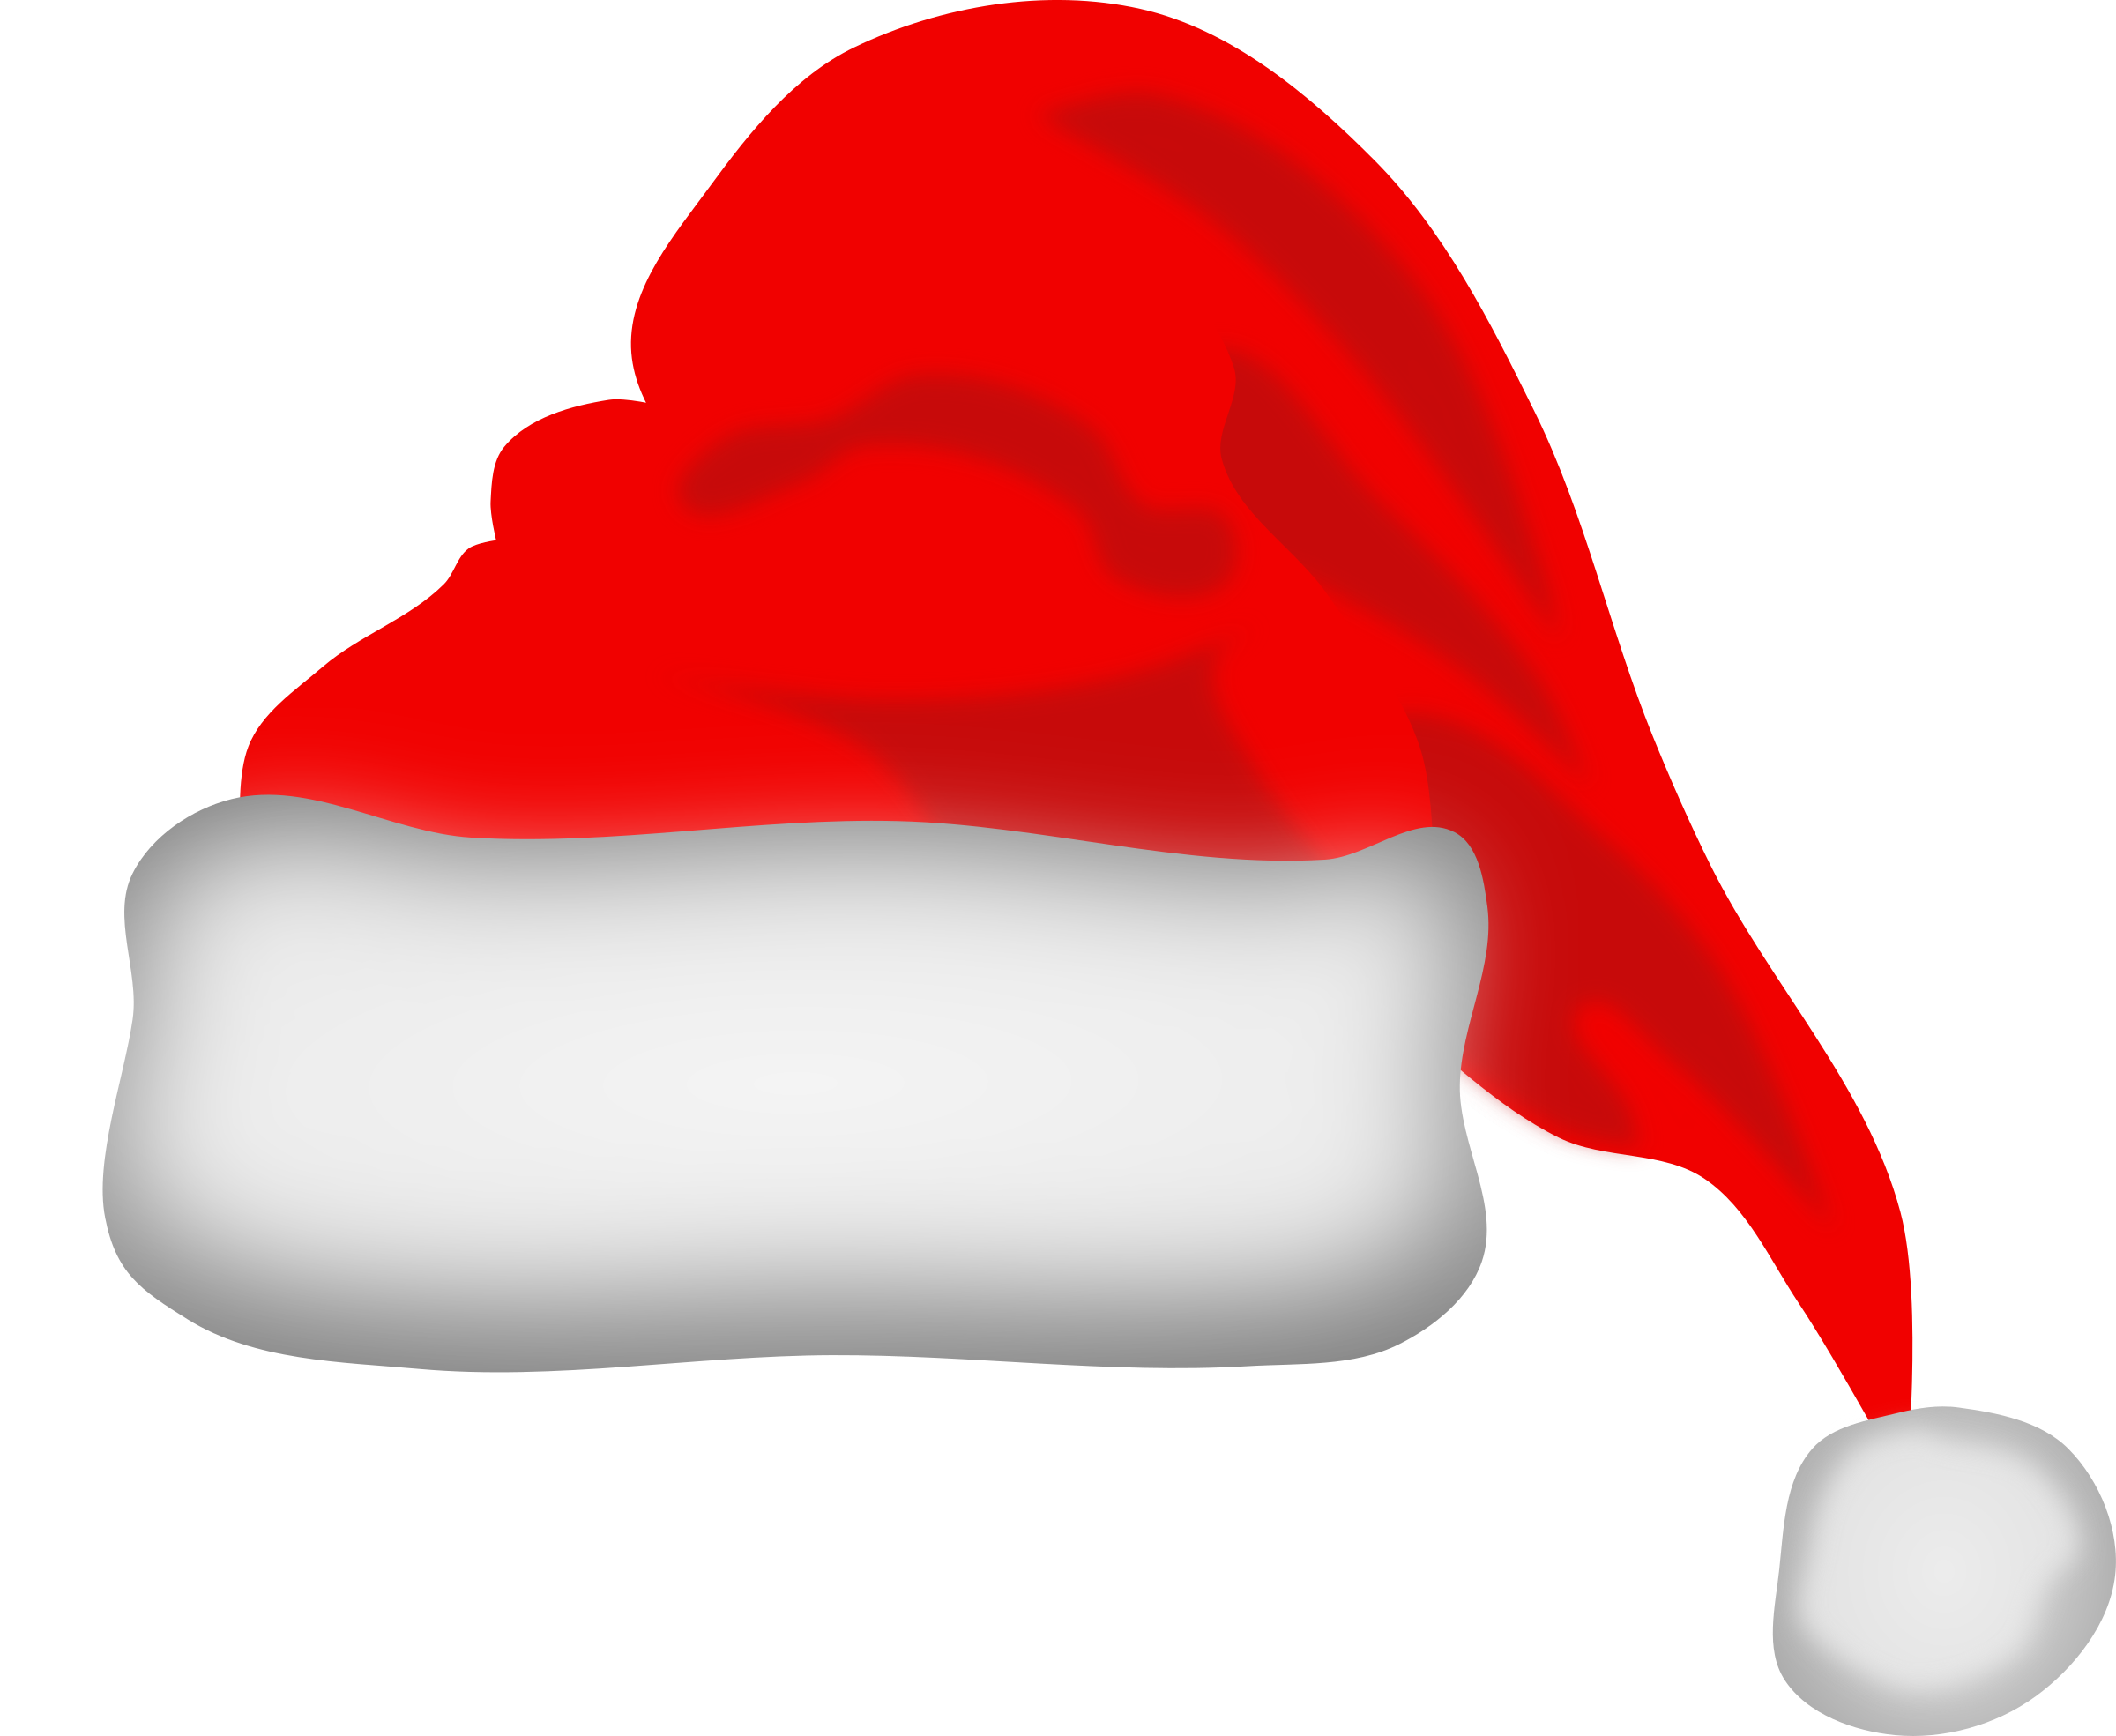 Santa Claus hat by rones